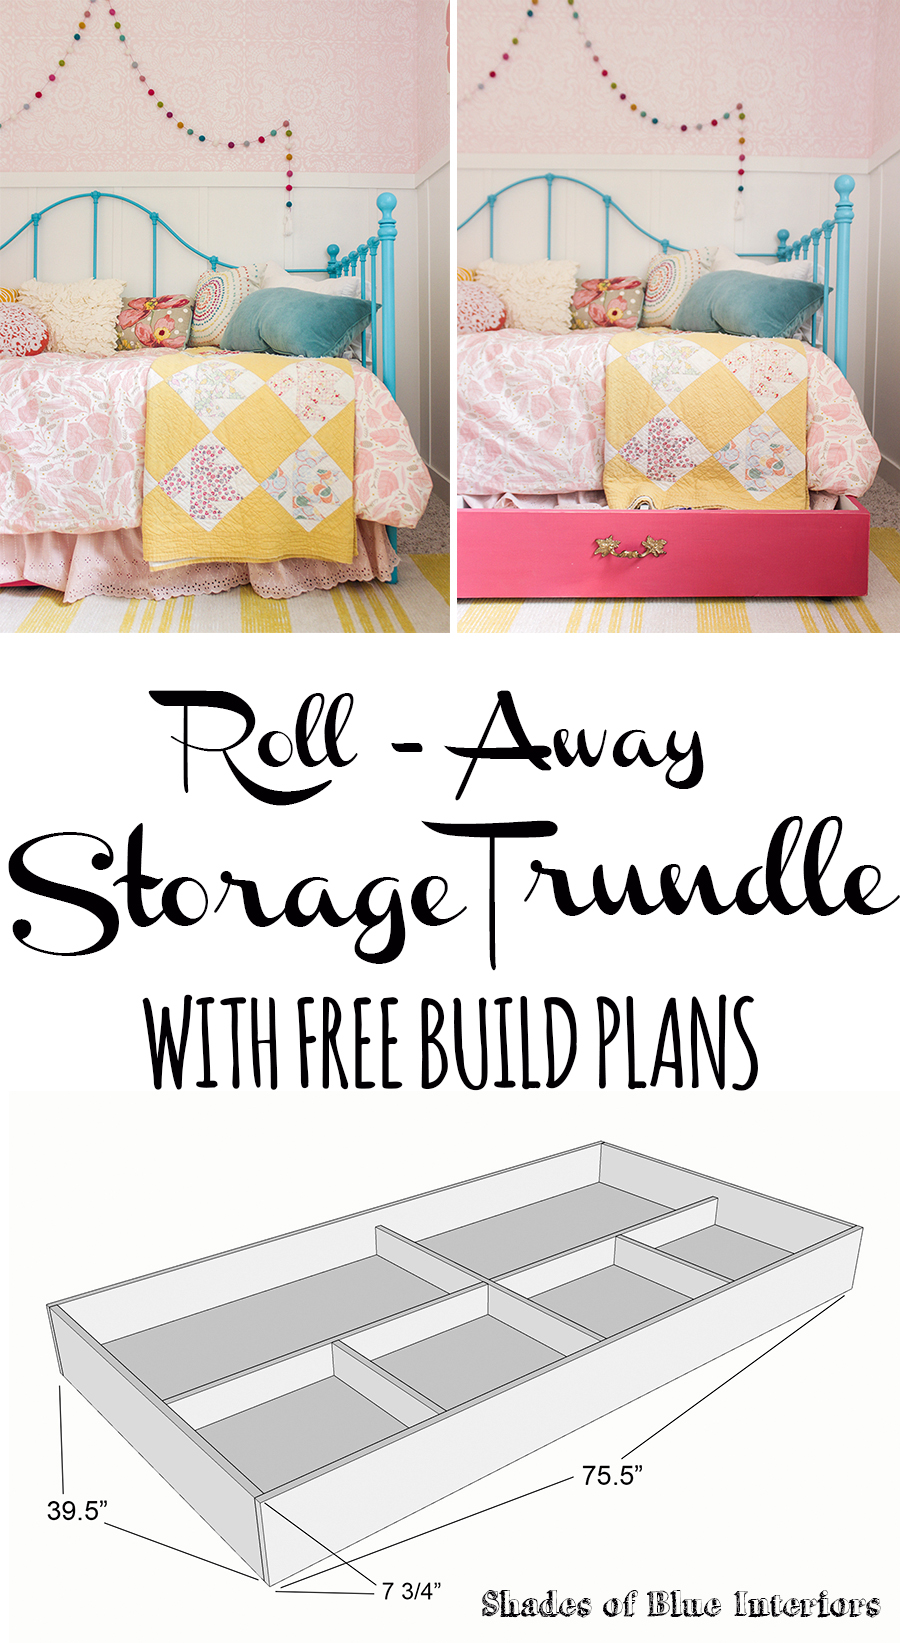 Roll Away Storage Trundle With Free Build Plans